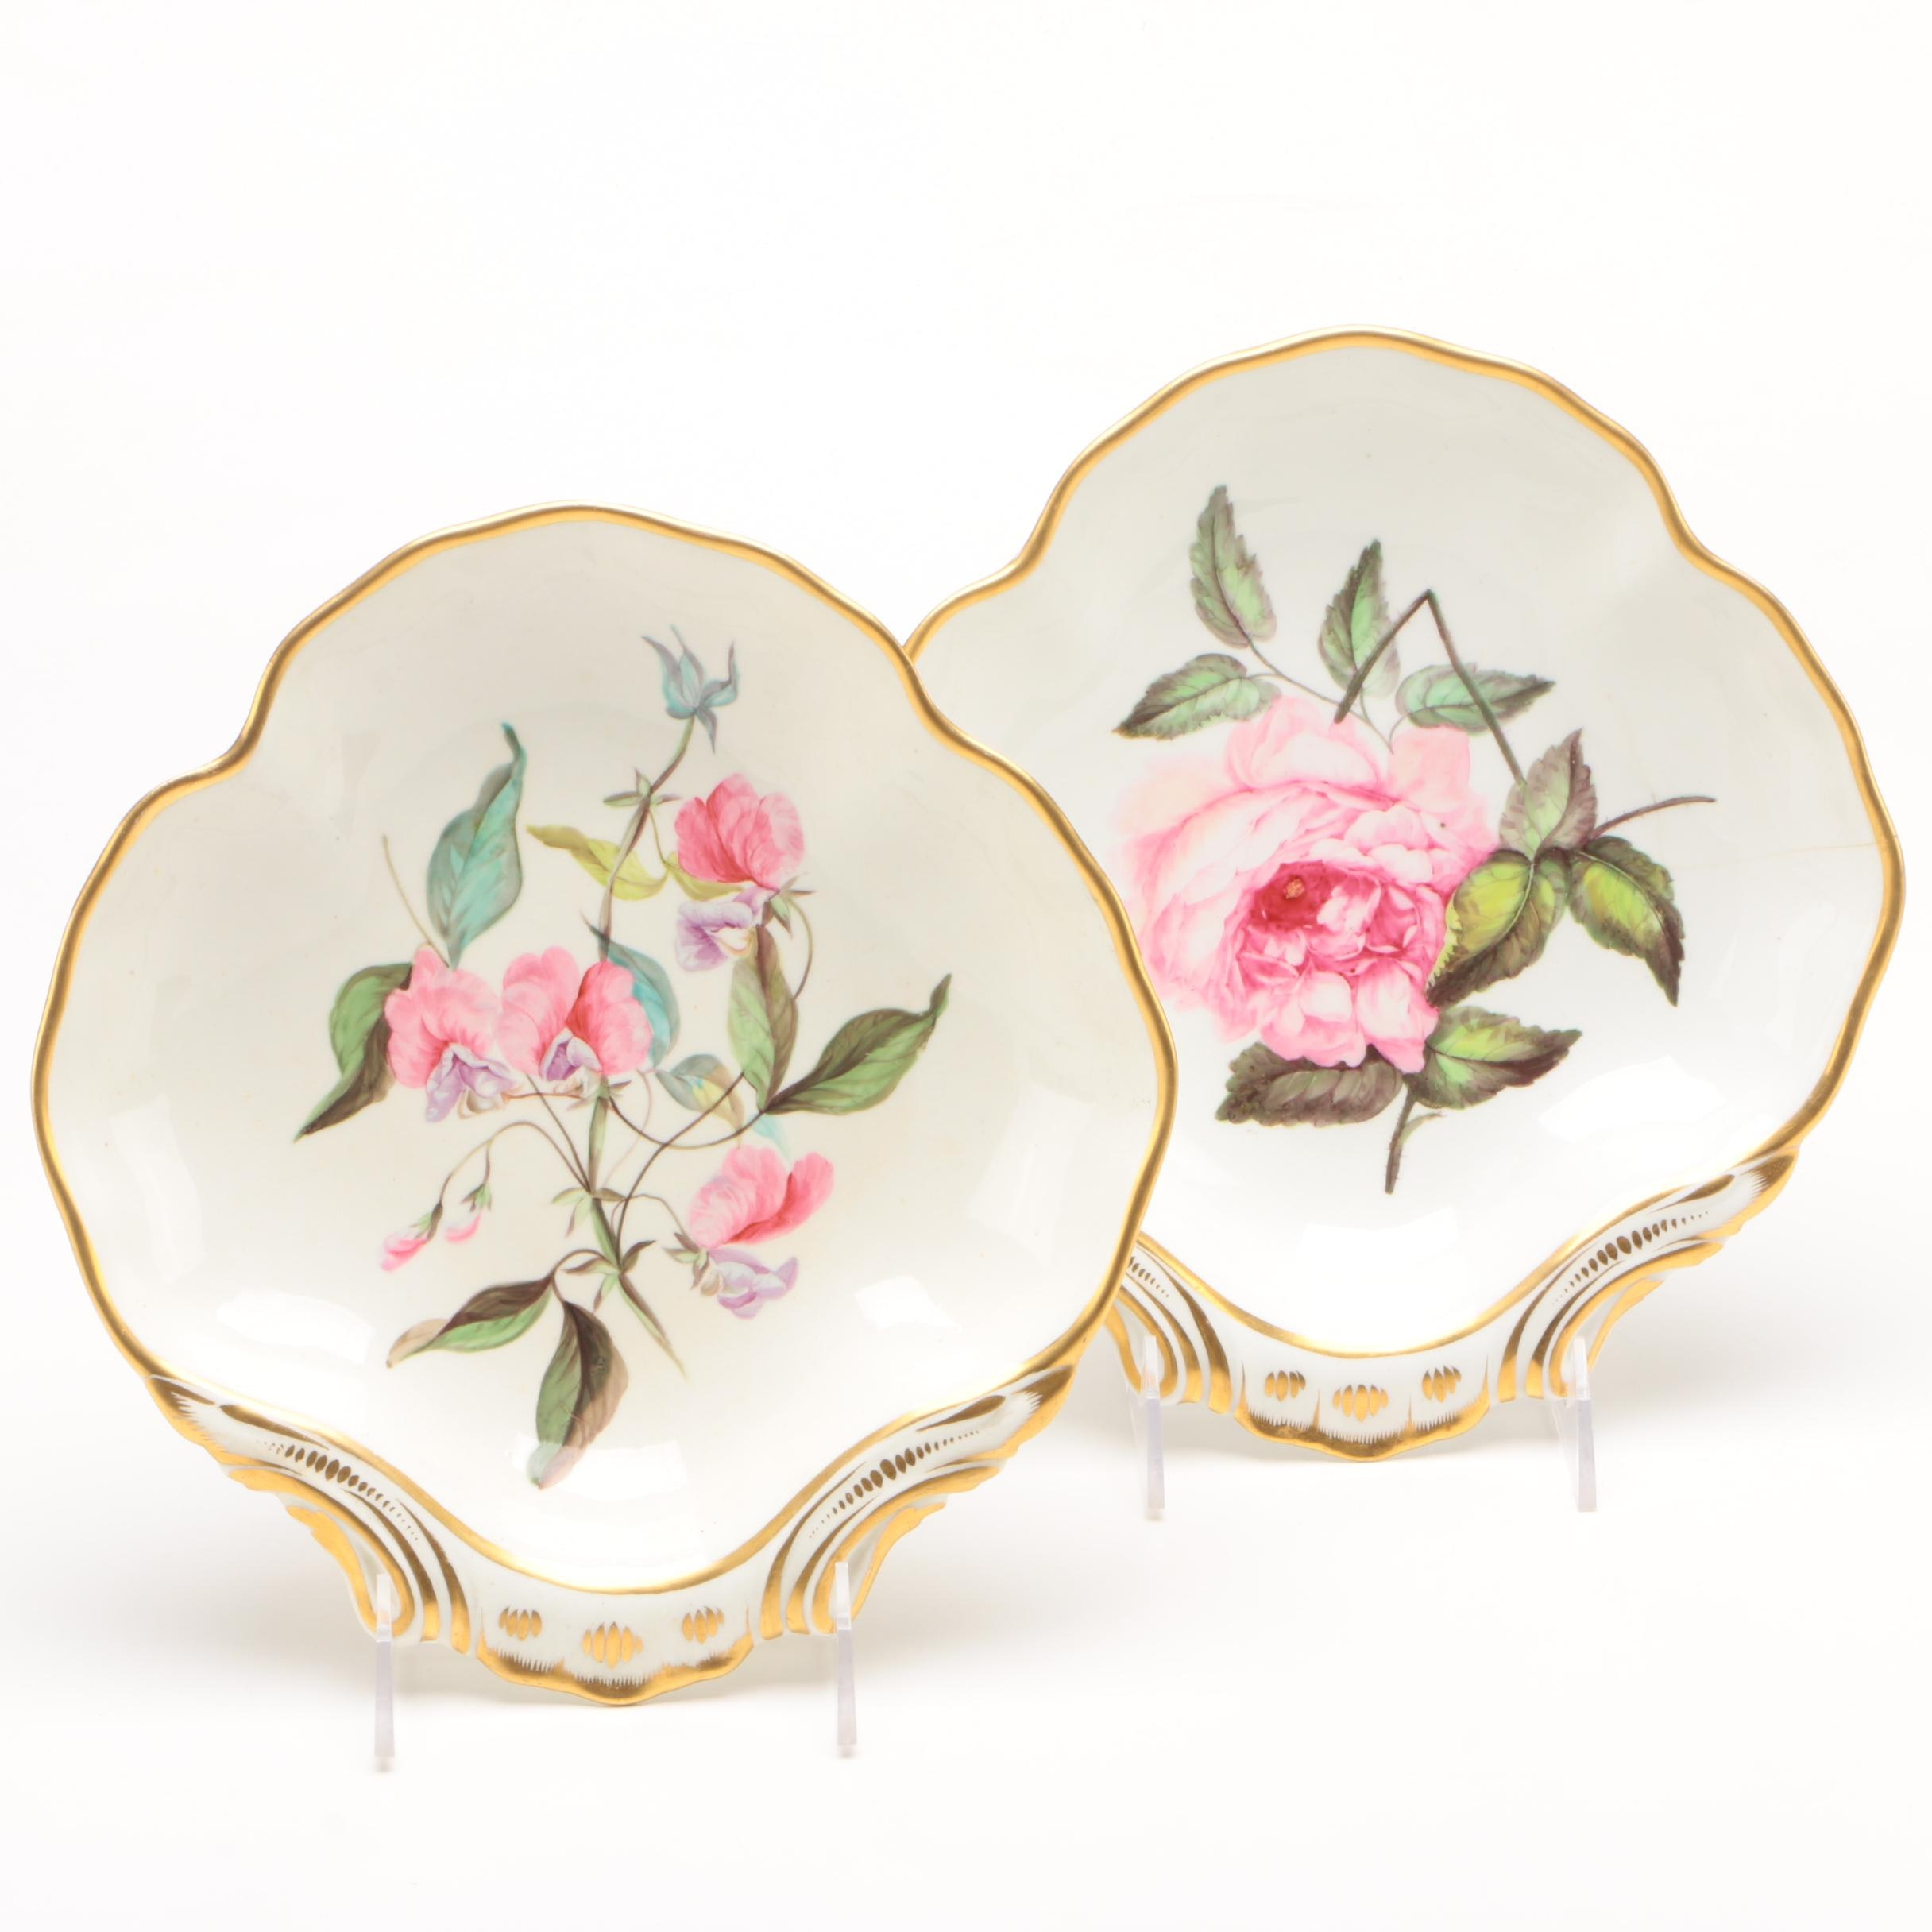 Duesbury Derby Botanical Painted Shell Dessert Dishes